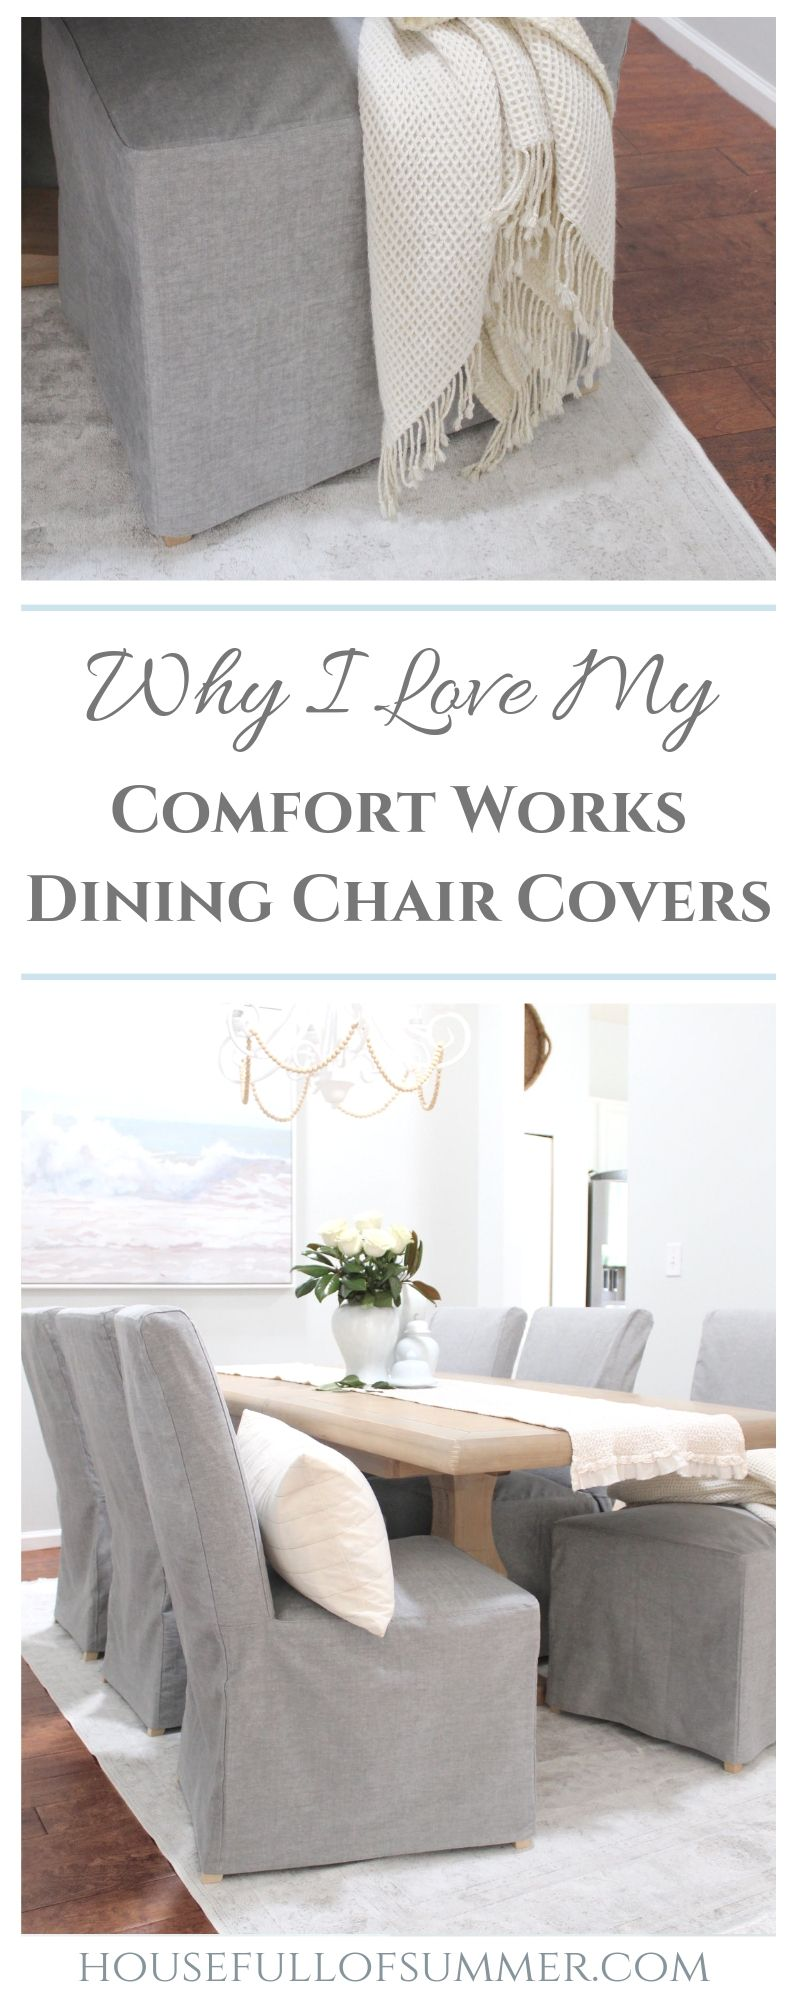 Why I Love My Comfort Works Dining Chair Covers Dining Room